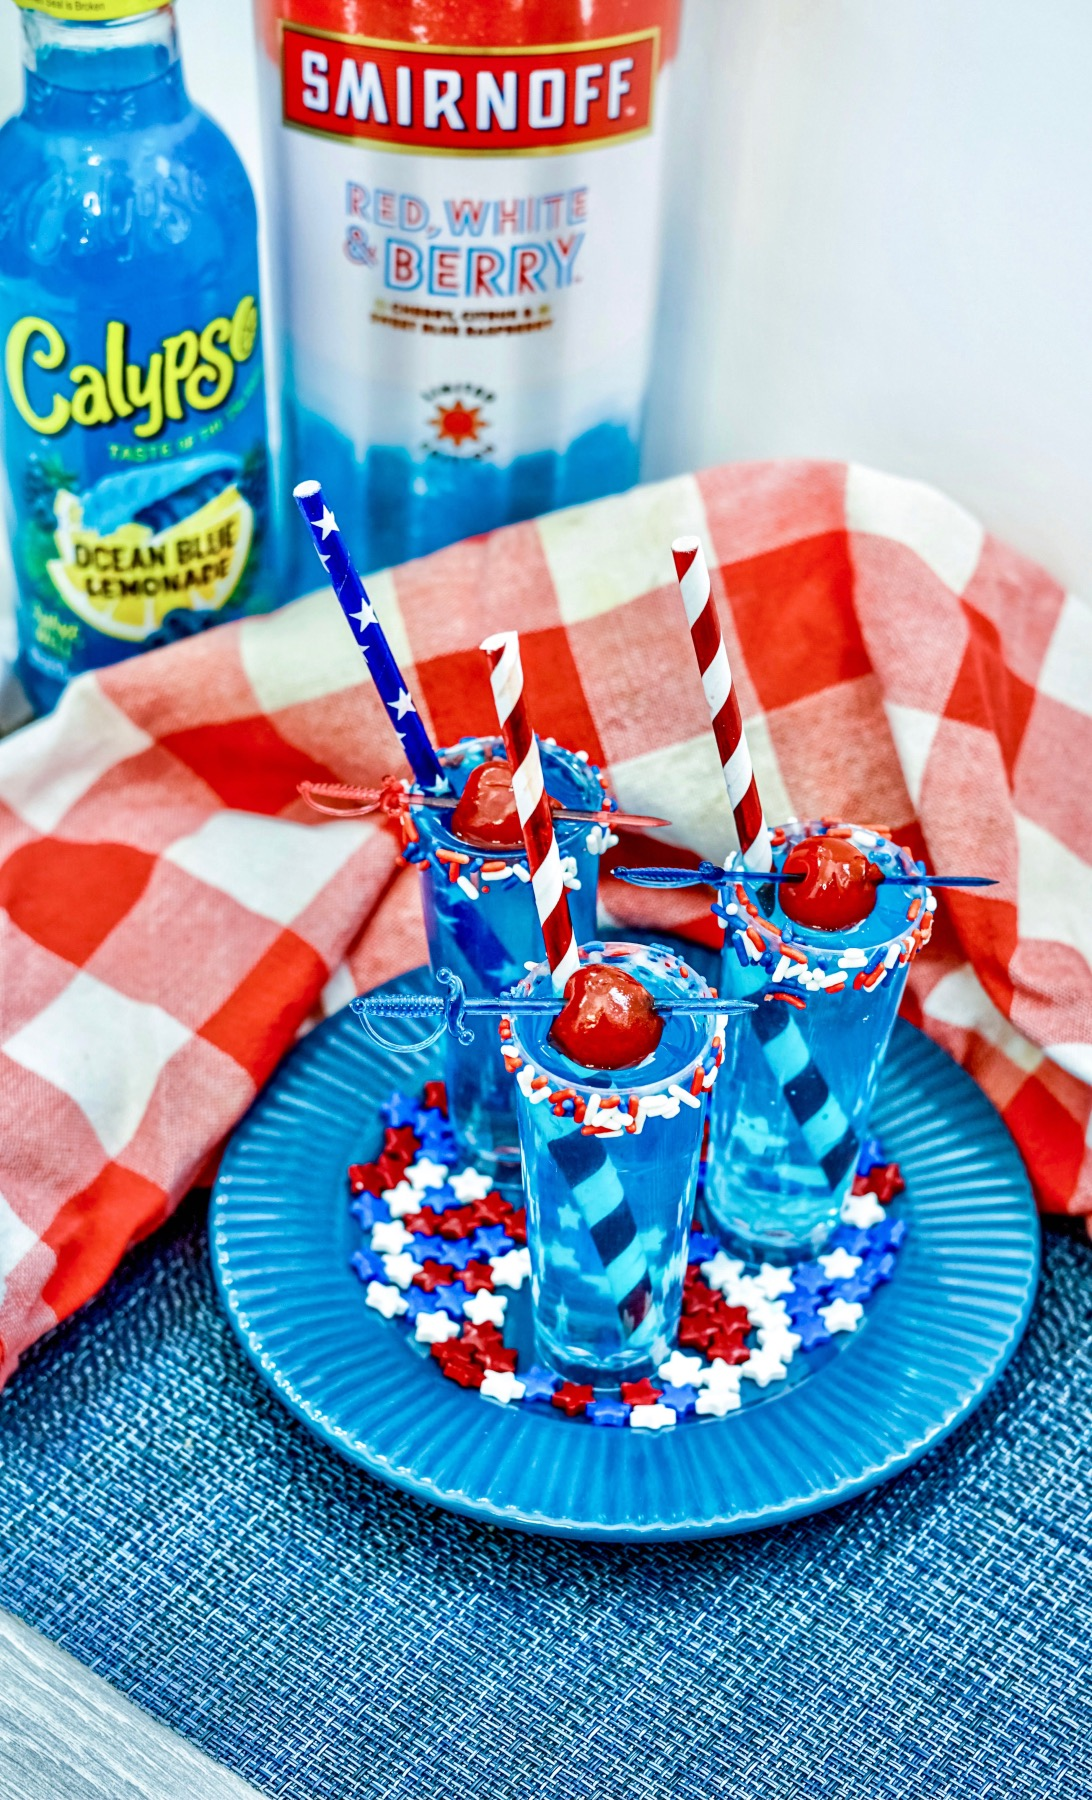 red, white, and berry cocktail shooters recipe